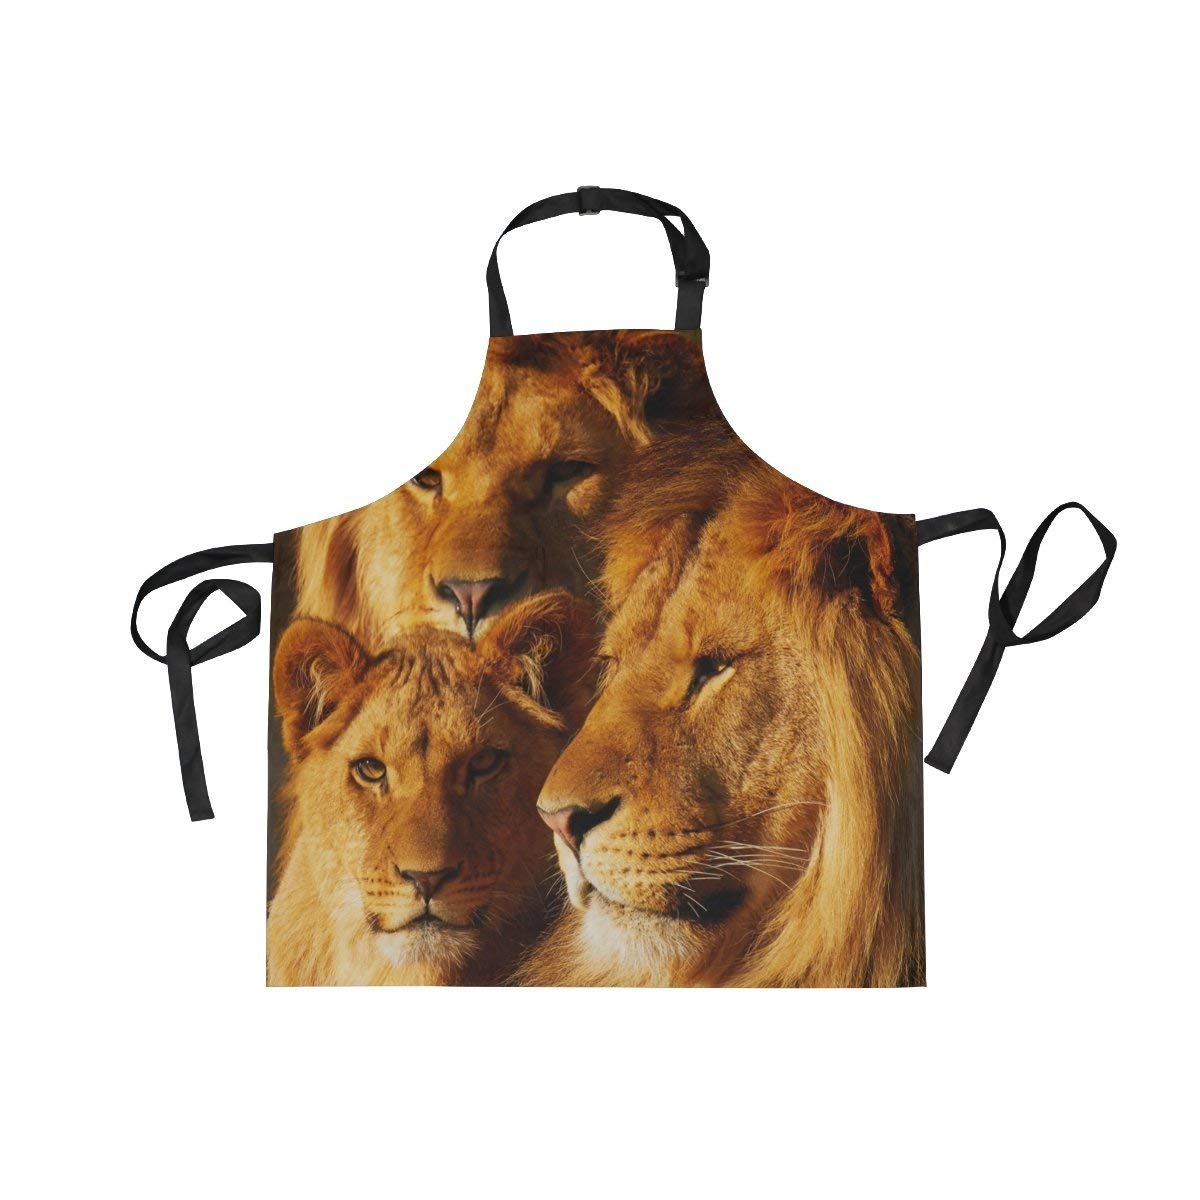 Unisex Apron Majestic Tree Lion Adjustable Apron with Pockets for Men Women Kitchen Personal Decor Cooking Baking Kitchen Gardening Waist Apron Adult Apron,Twill,Multicolor